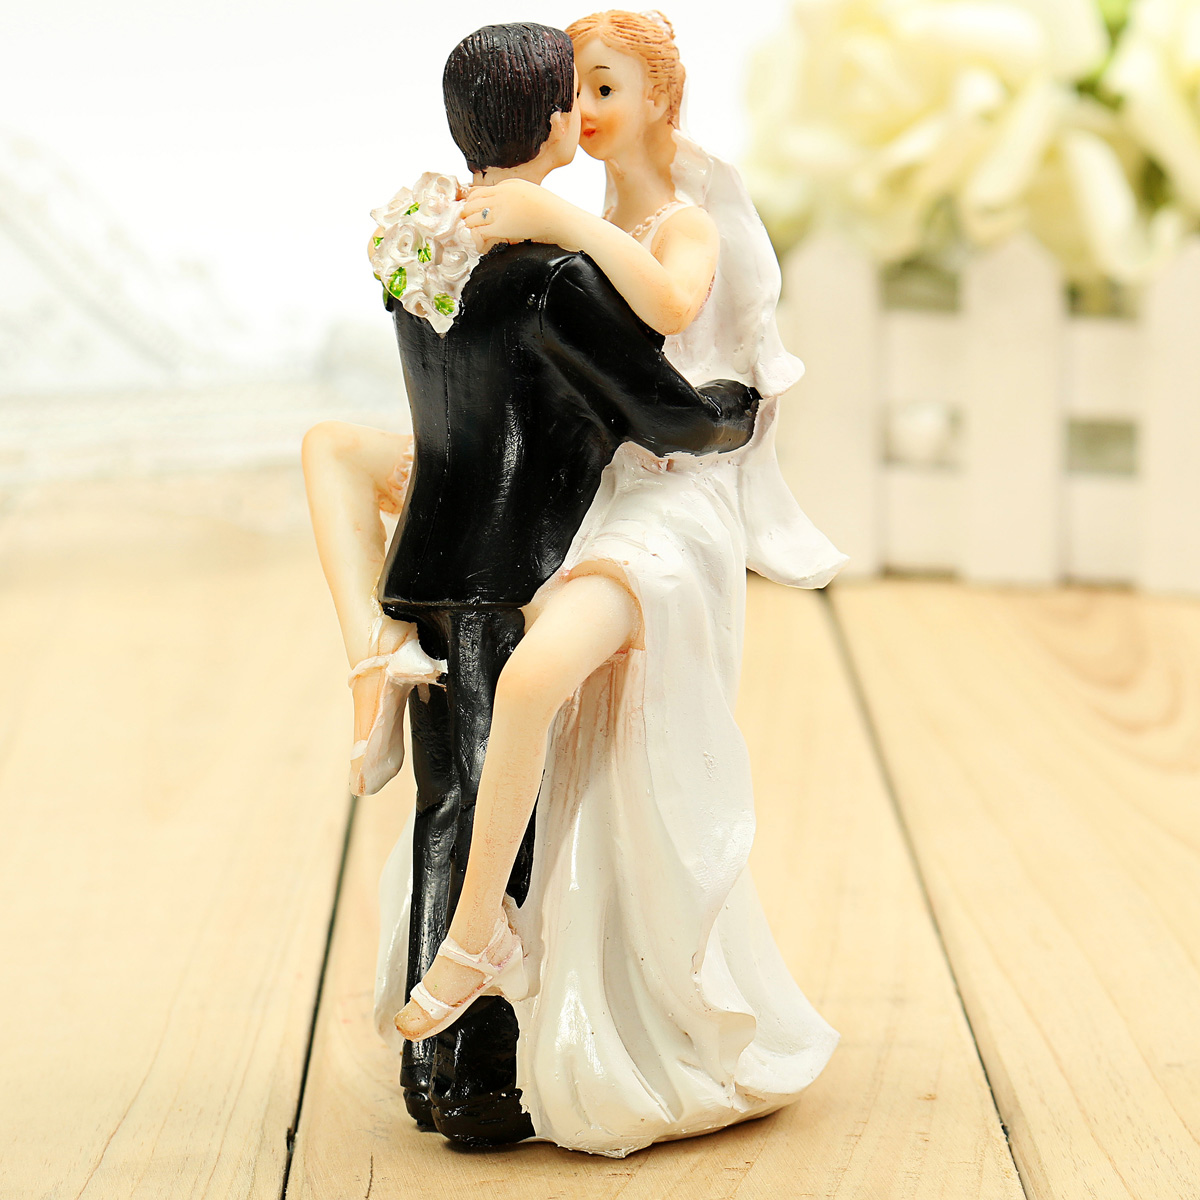 wedding cake topper figurines groom resin wedding cake topper figurine 26319